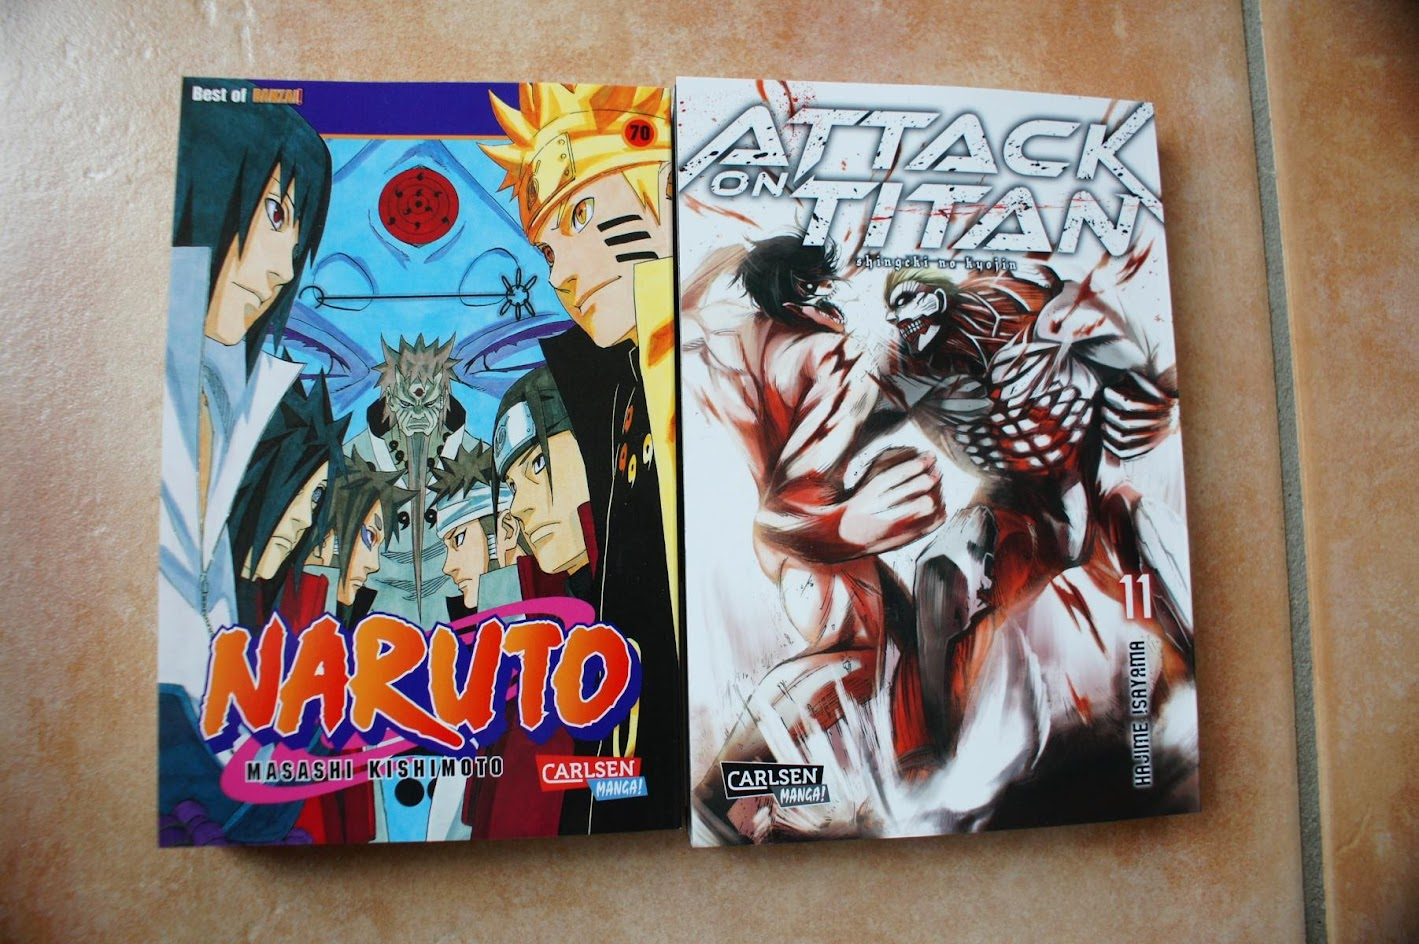 Carlsen Manga November Naruto Attack on Titan